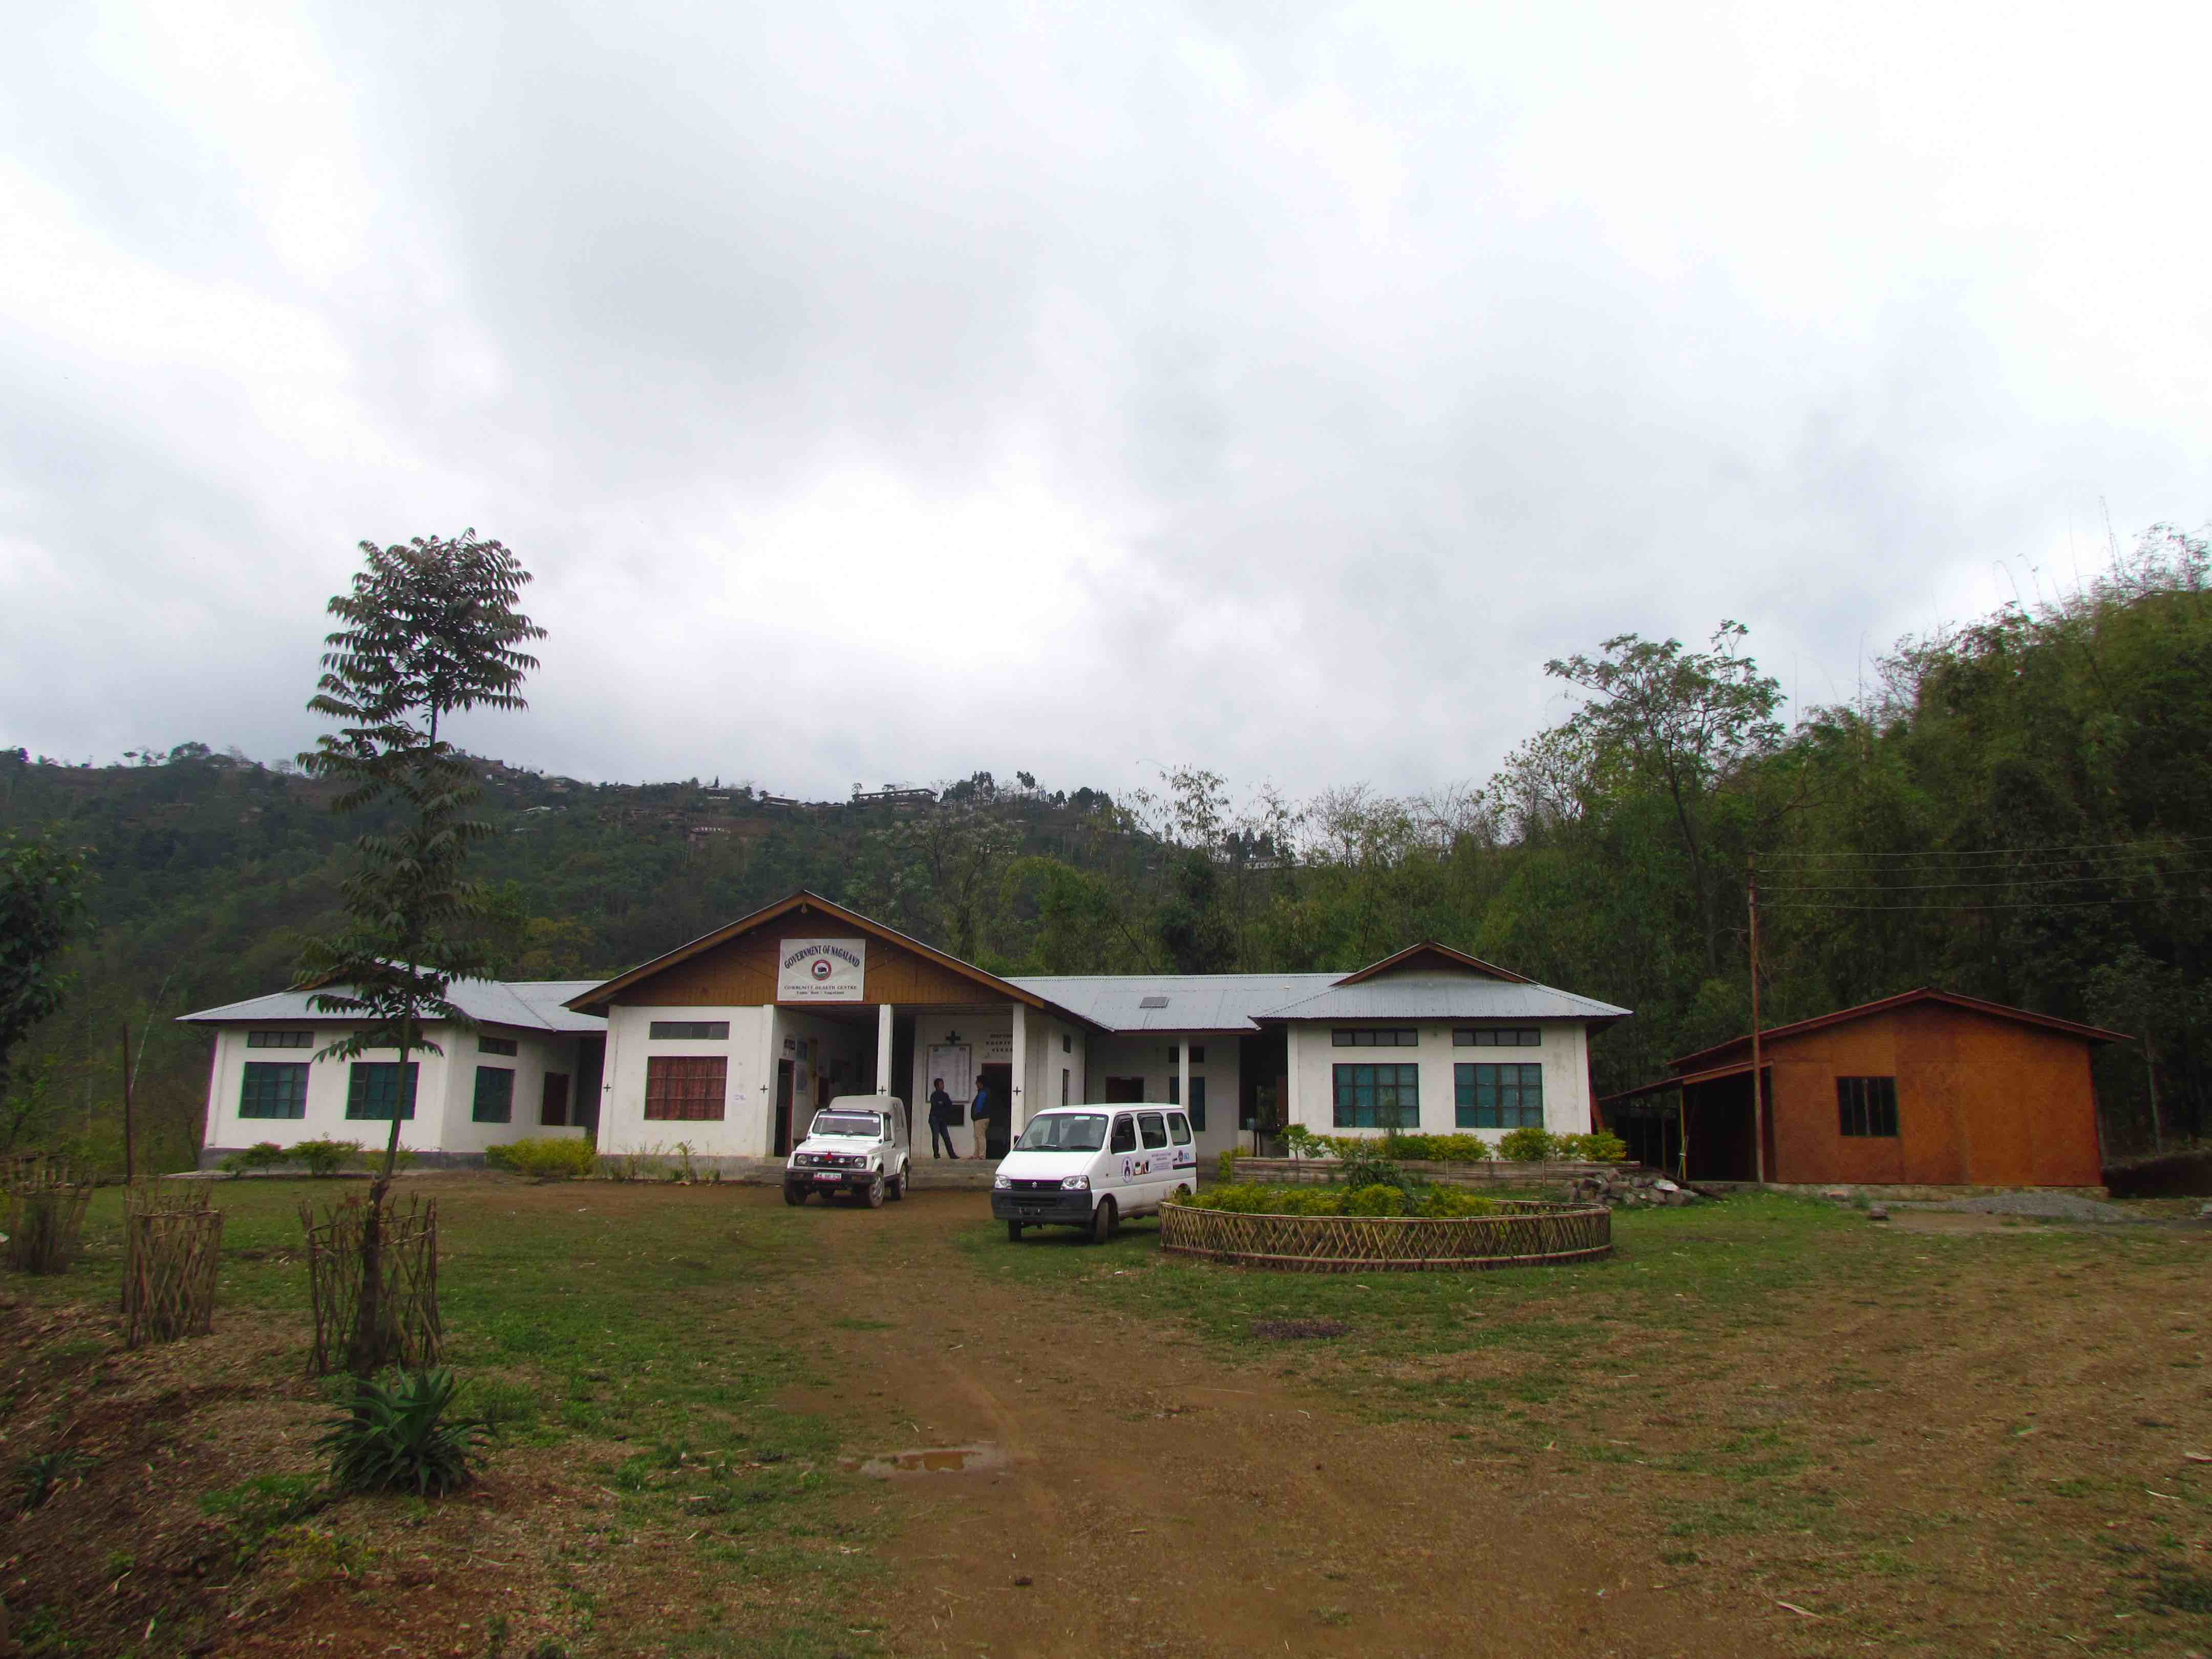 The Community Health Centre in Tobu. It covers the healthcare needs of more than ten villages while being understaffed and receiving insufficient funds. Credit: Sarita Santoshini